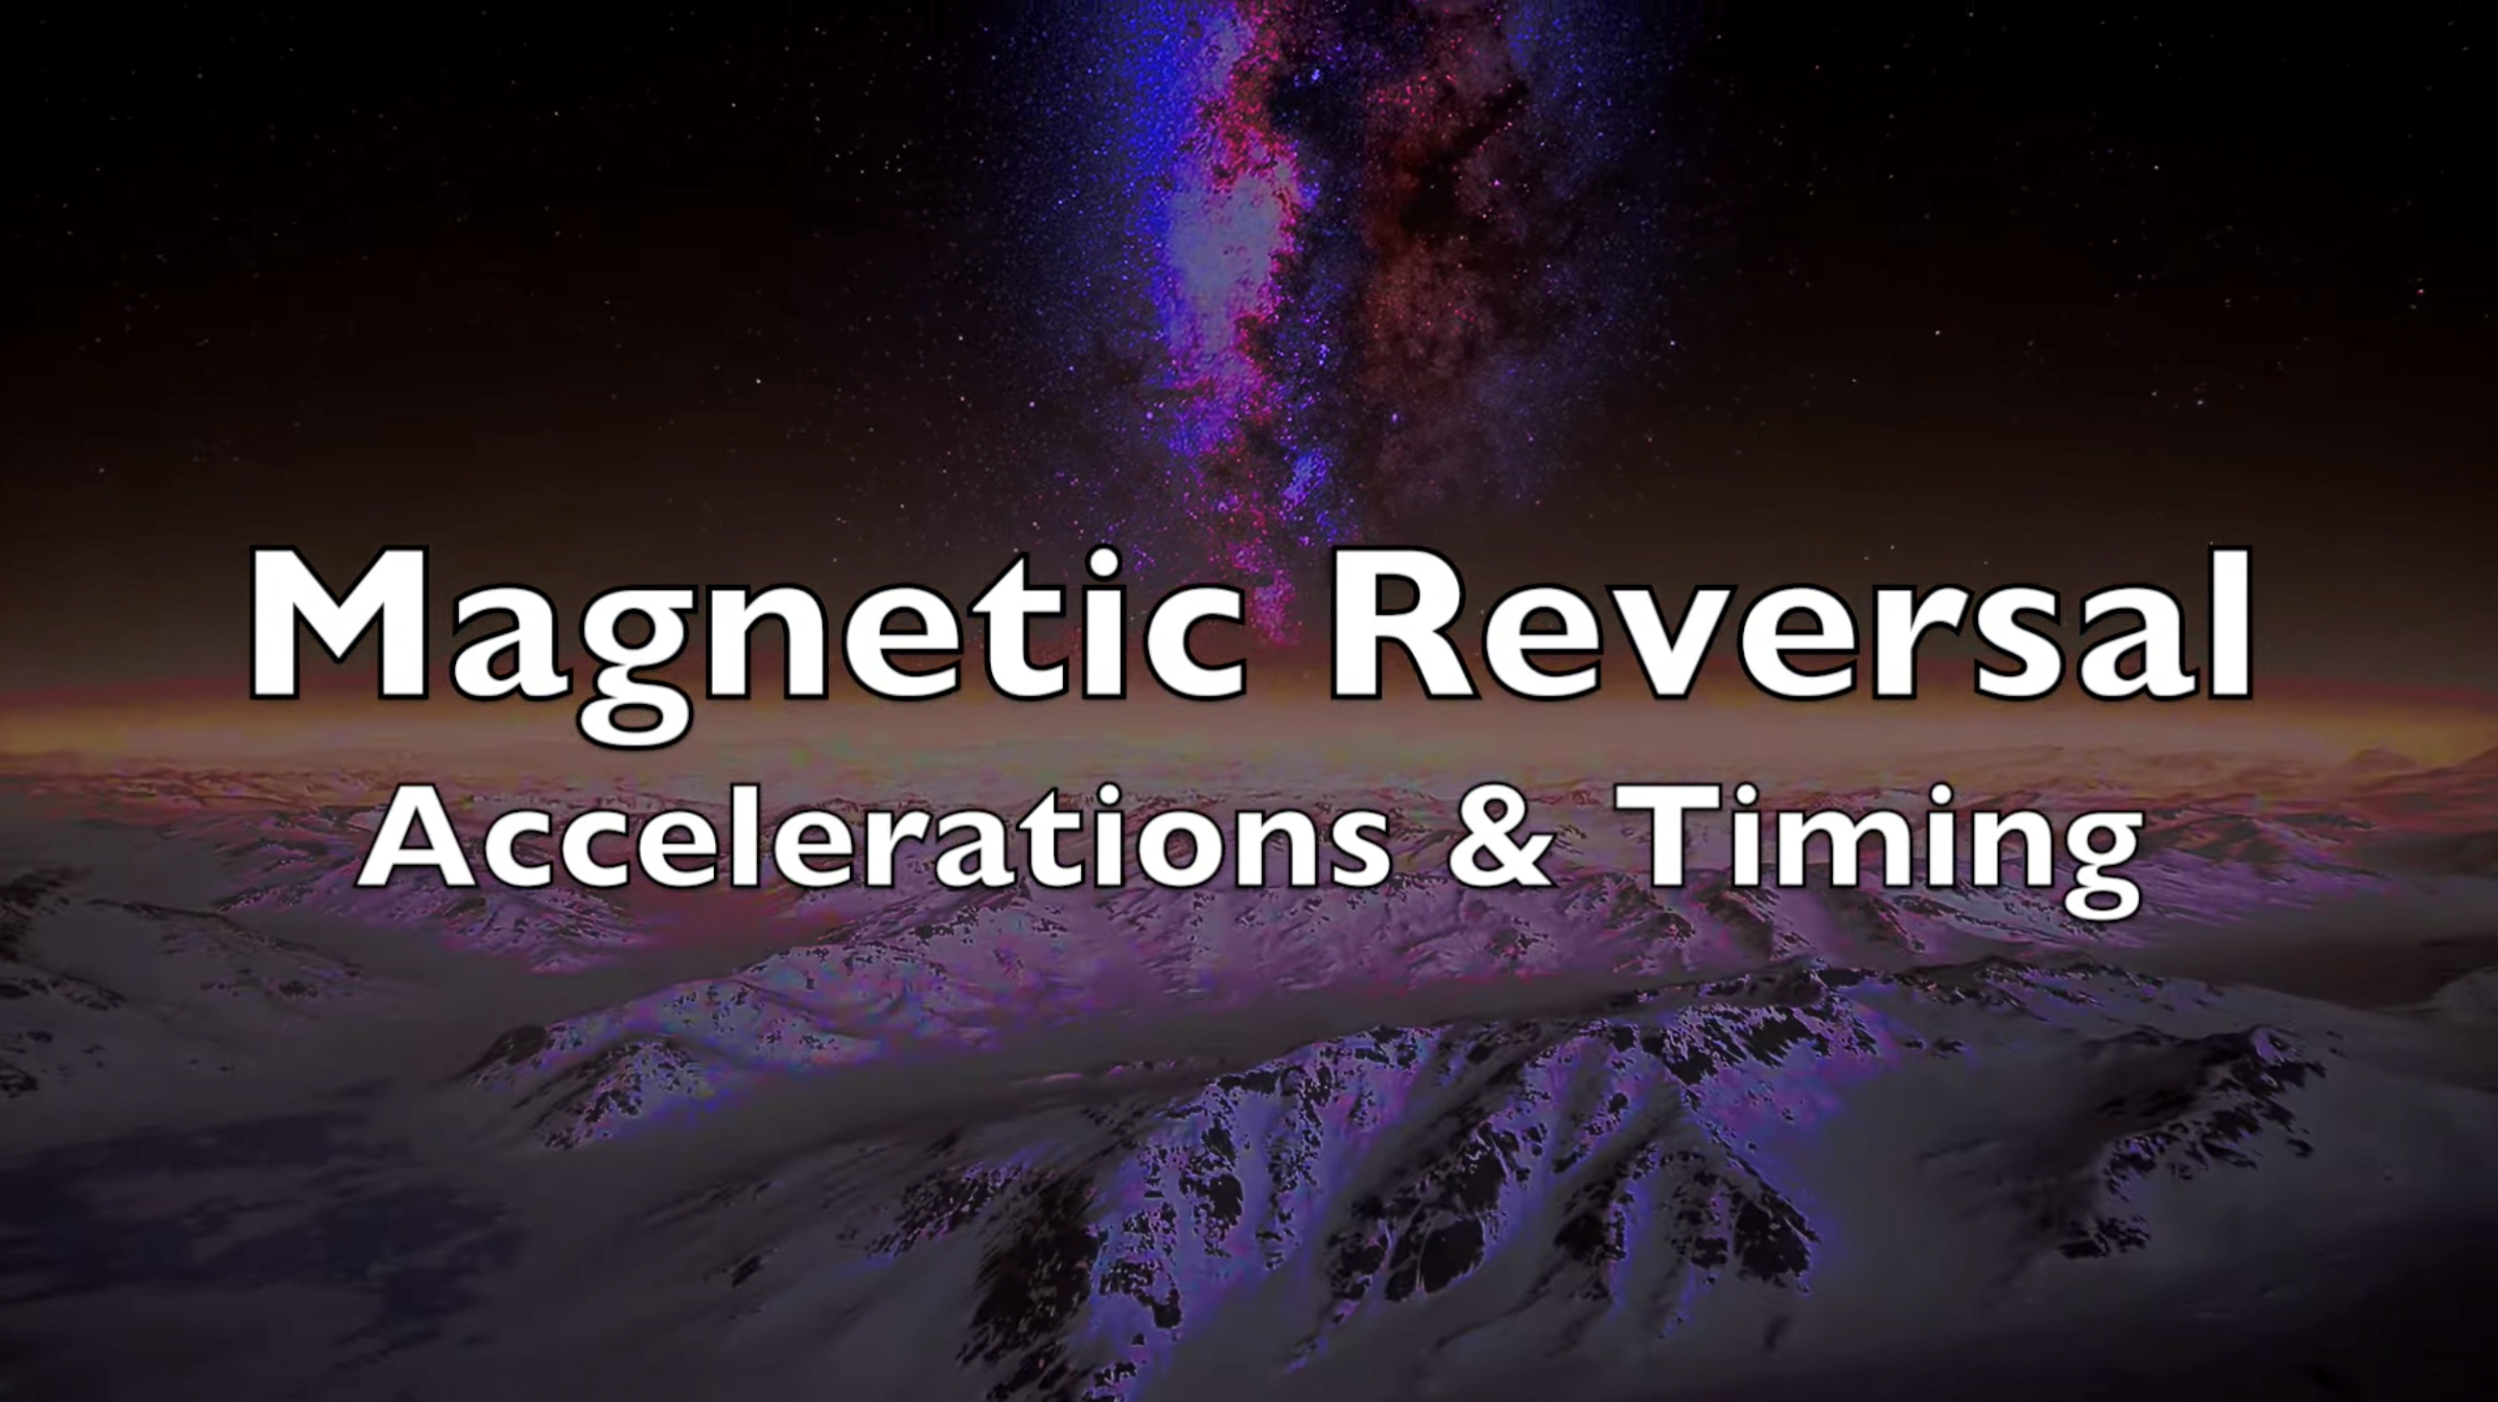 Magnetic Reversal Accelerations and Timing 12 20 2019